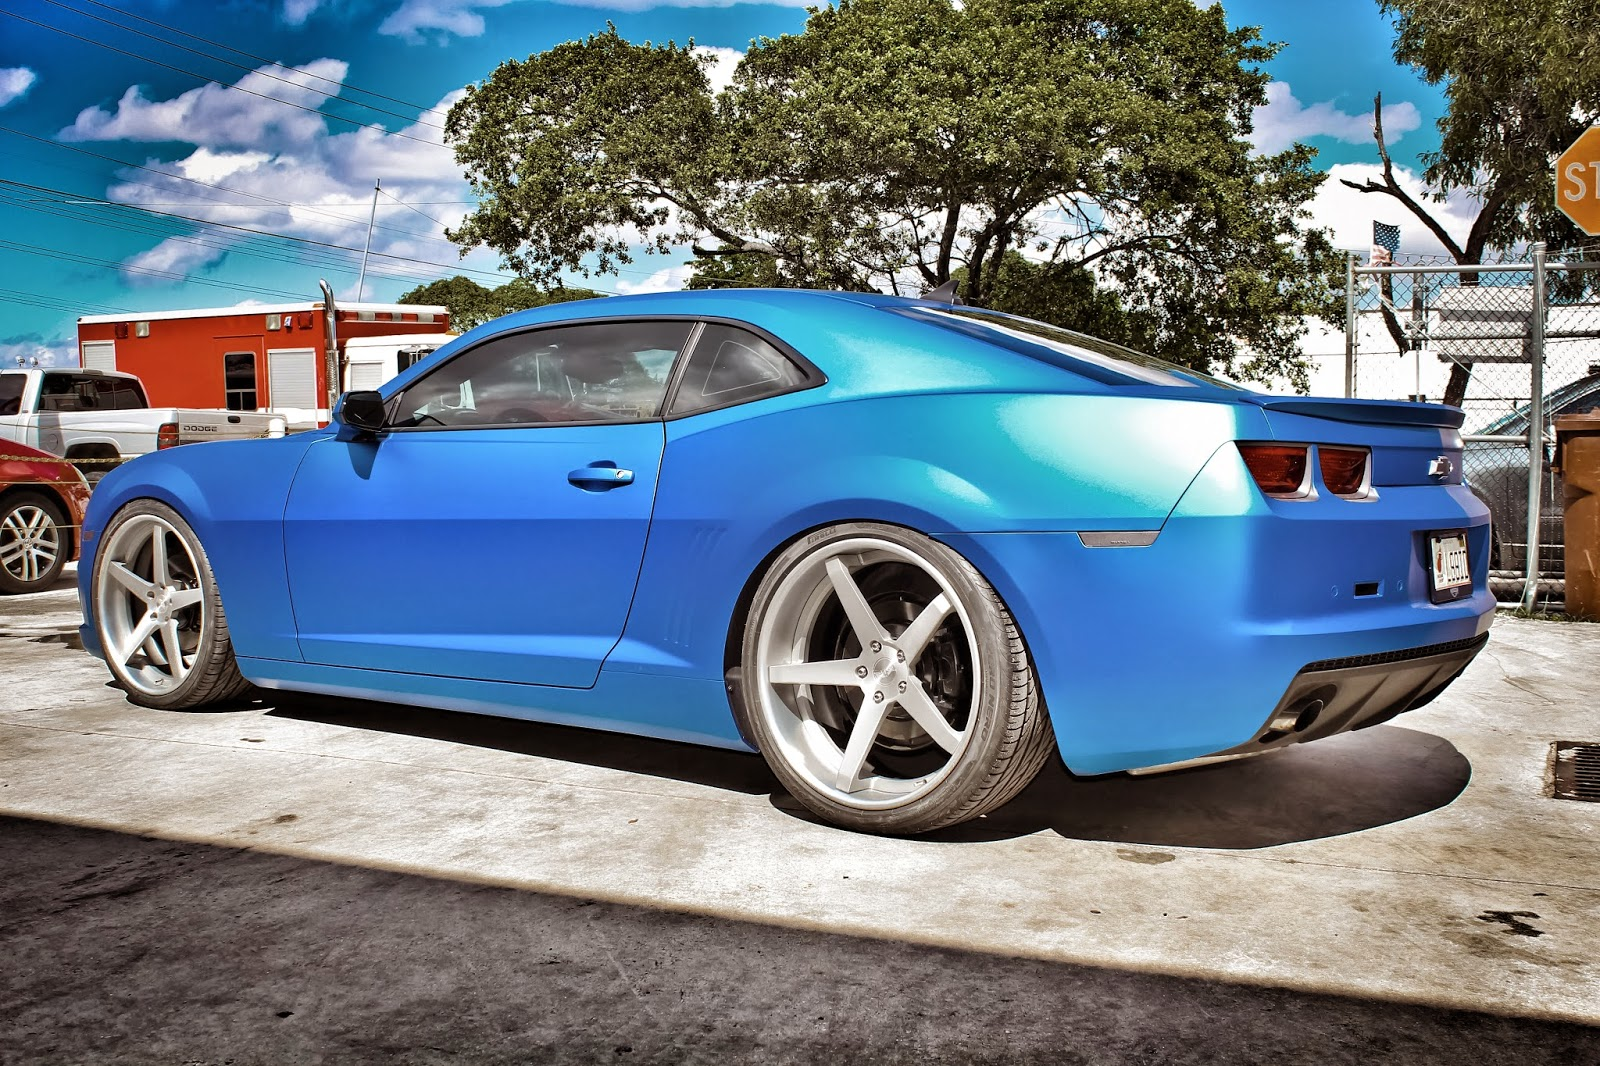 Camaro chevy camaro 24 inch rims First Choice Wheels and Tires: Chevy Camaro with 22 inch Staggered ...